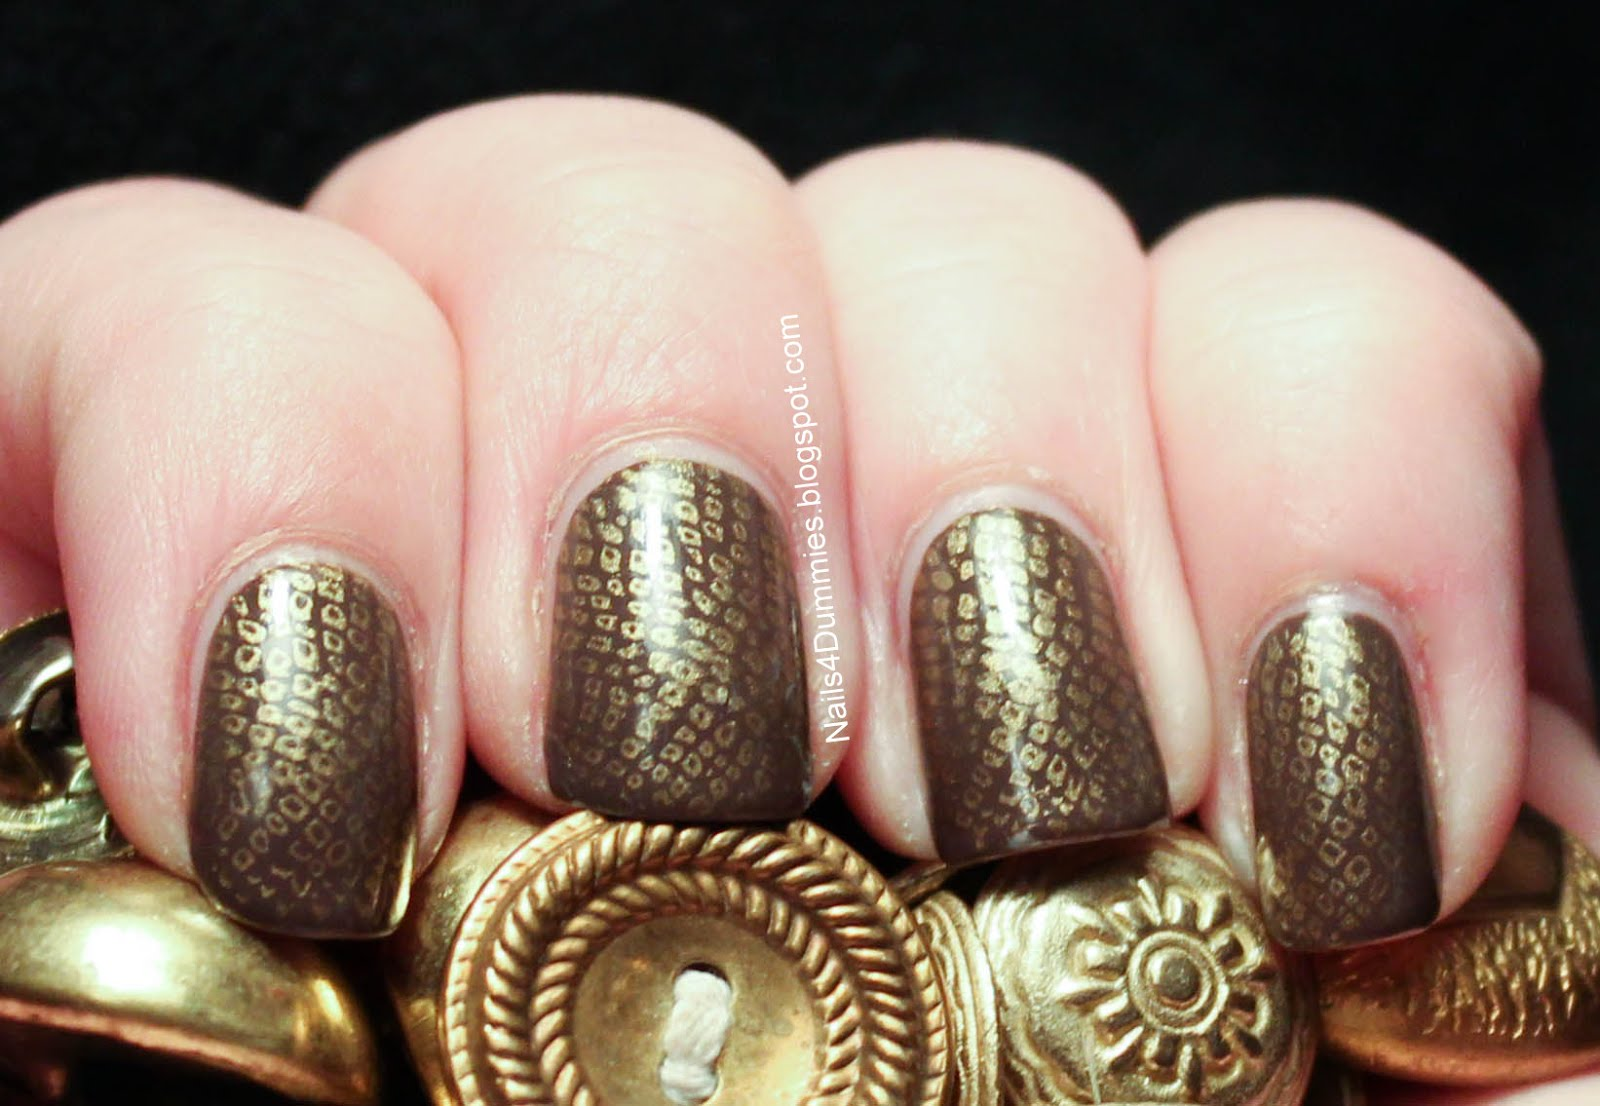 Nails 4 Dummies!: Golden Snake Stamp Nails